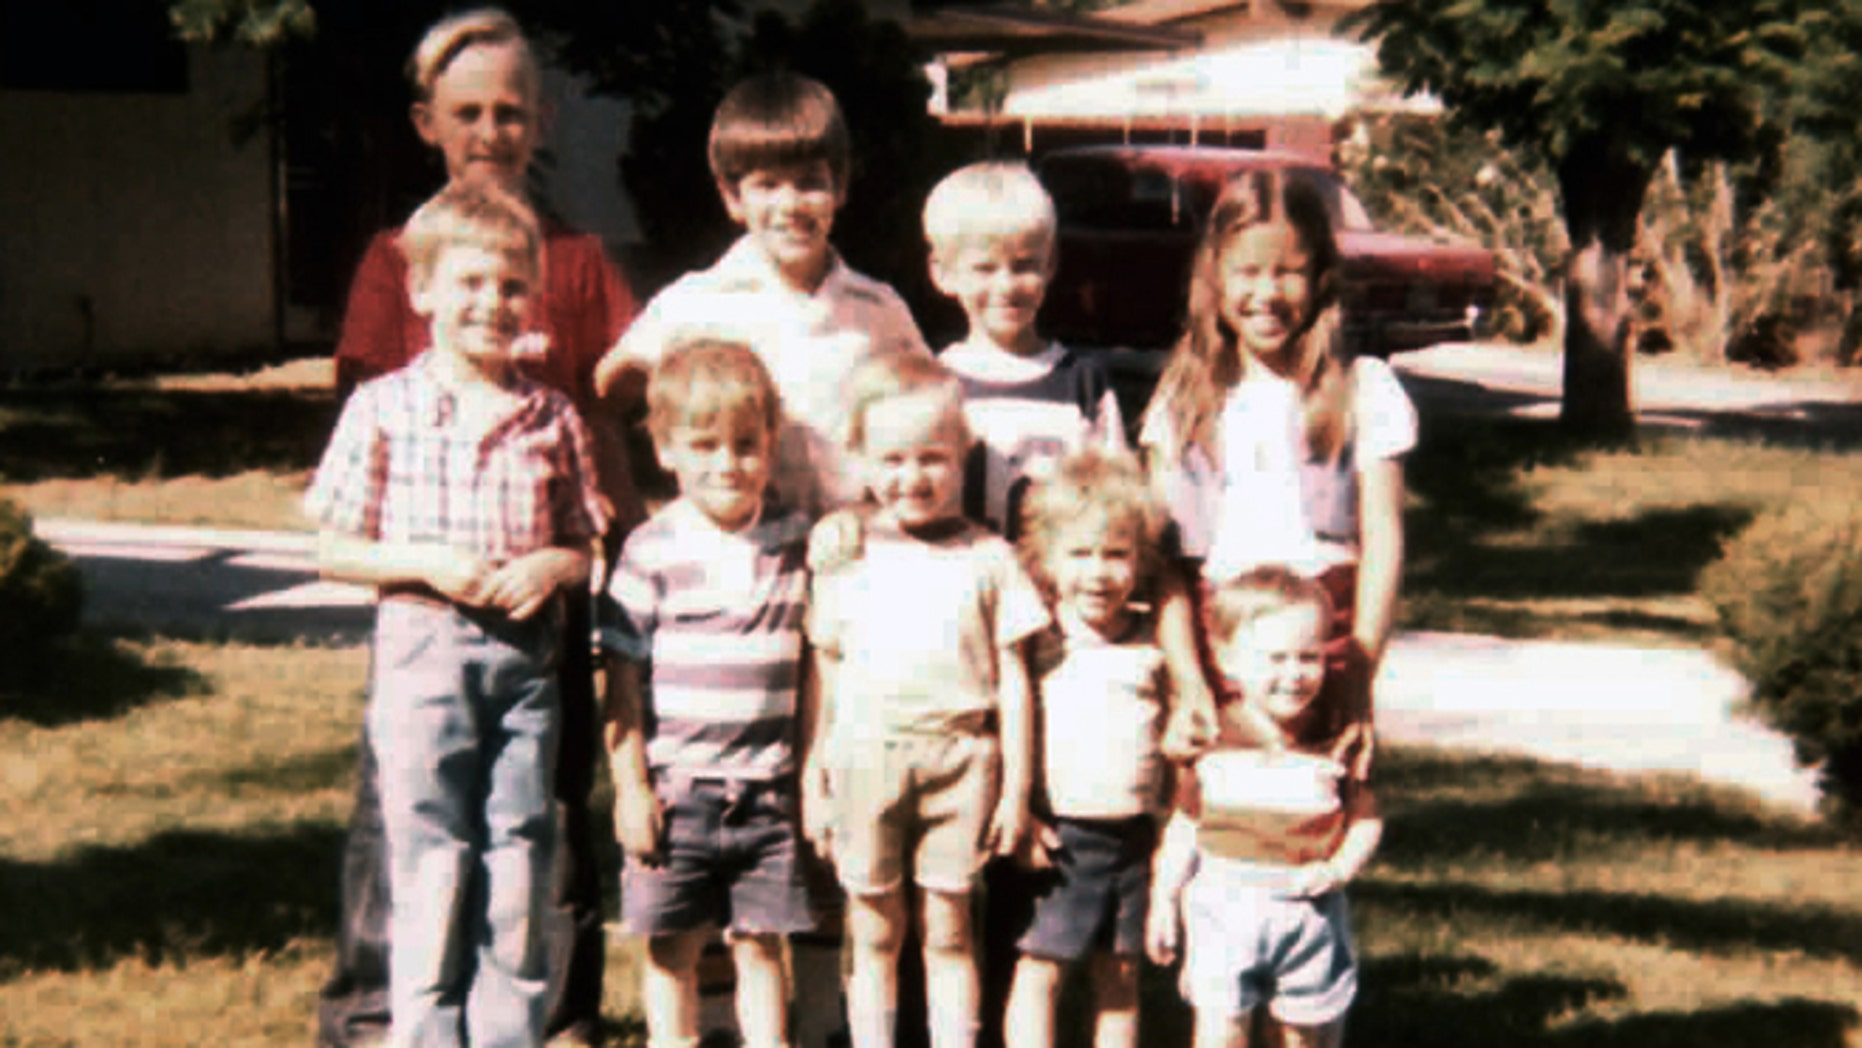 This 1980s photo provided by Bryce Thiriot shows Marco Rubio, second from left back row, his younger sister Veronica, right back row, and their neighbors, the Thiriot brothers, in Las Vegas in the early 1980s. The Republican Florida senator and presidential candidate spent six of his formative years in Las Vegas, where he joined the Church of Jesus Christ of Latter Day Saints and became a strong backer of labor unions. Back row, left to right, Bryan Thiriot, Marco Rubio, Nathan Thiriot, Veronica Rubio. Front row left to right, Jason Thiriot, Joel Dixon, Bryce Thiriot, Jodi Dixon, Jarren Thiriot. (Bonnie Thiriot/Courtesy of Bryce Thiriot via AP)